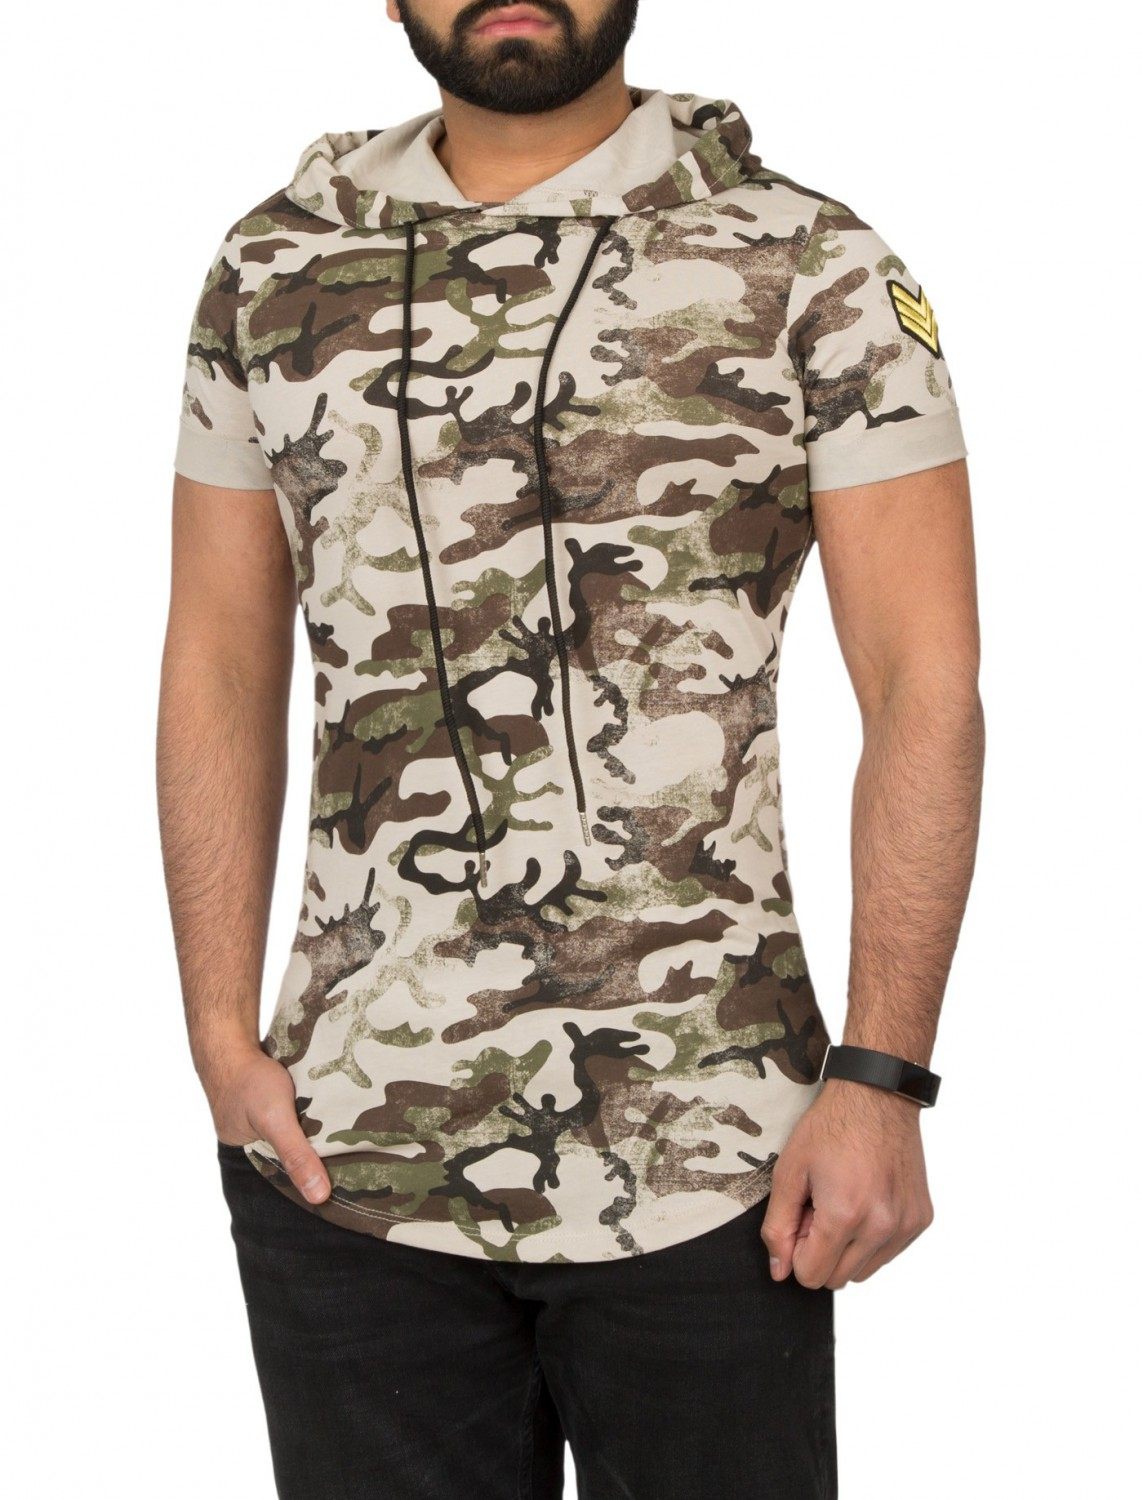 T Homme T T Shirt Homme Shirt Homme Camouflage Shirt T Camouflage Camouflage 35RLqAj4